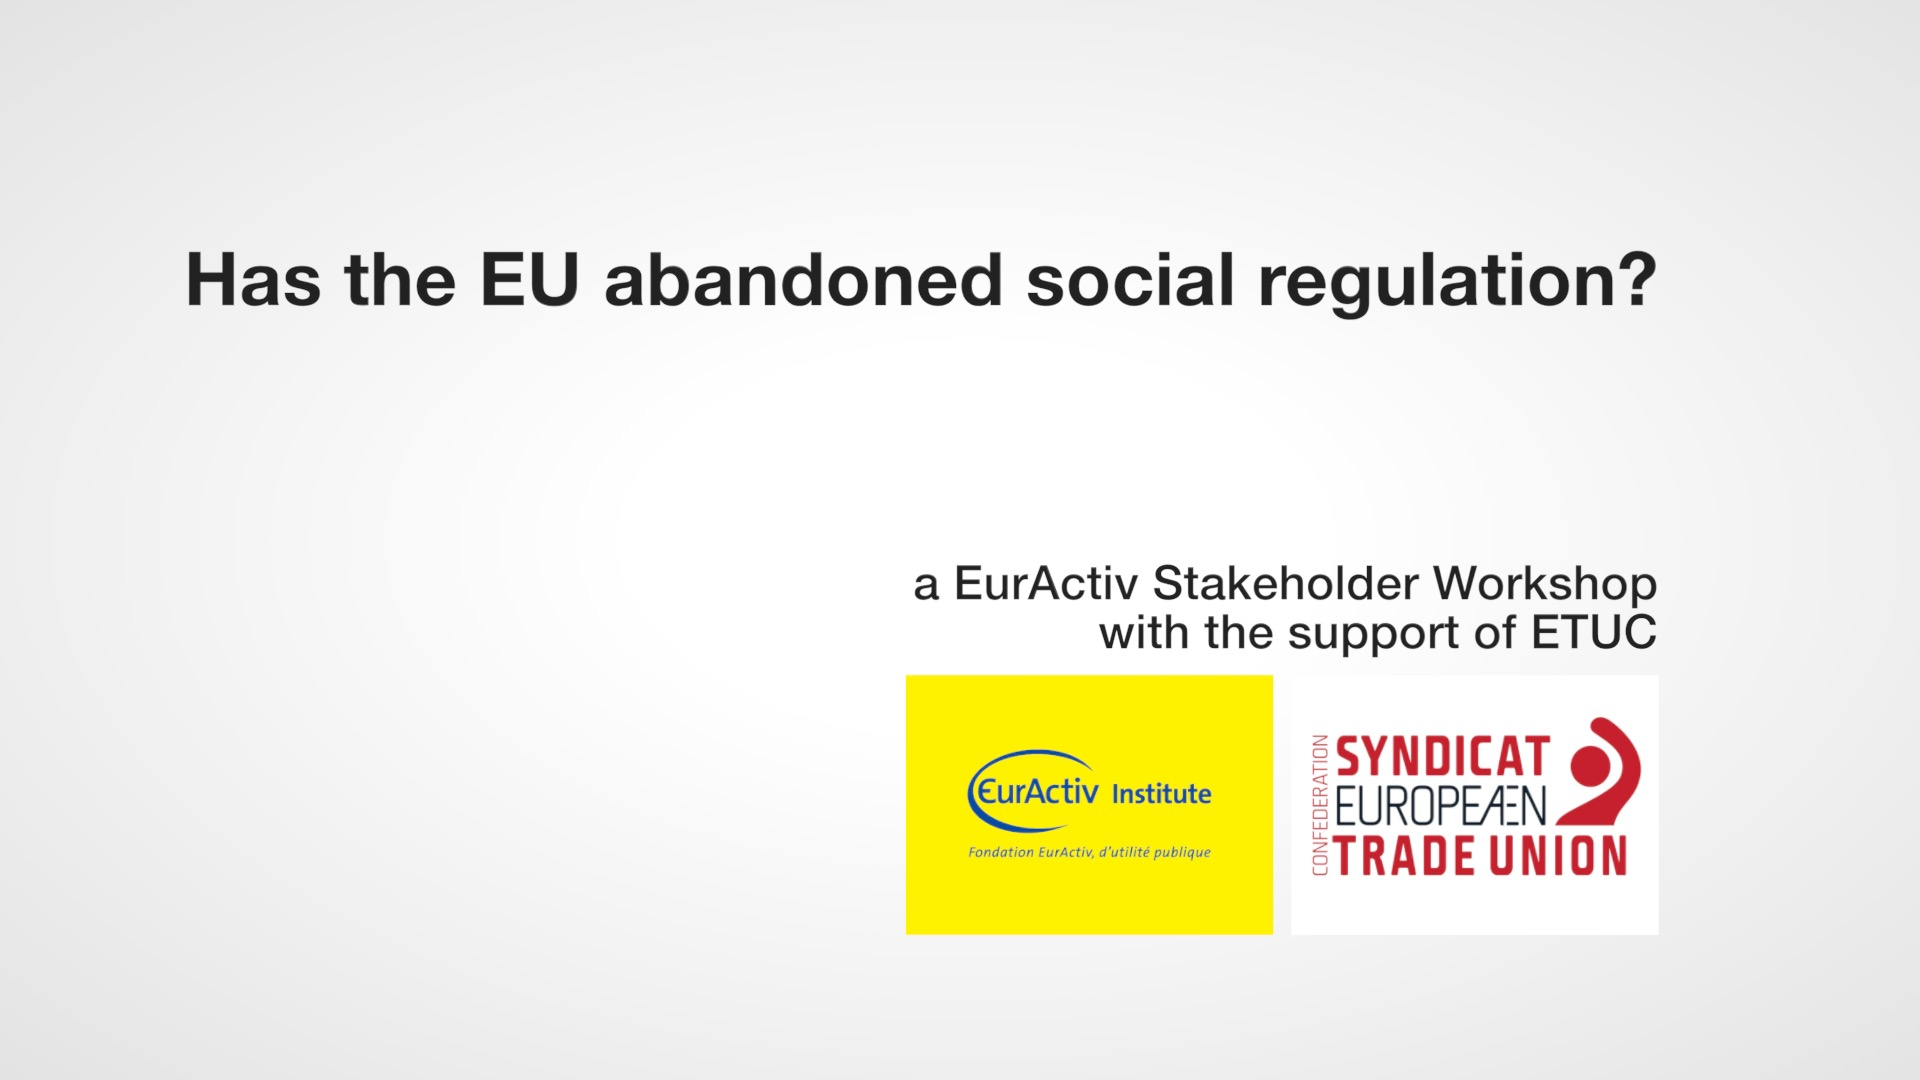 Has the EU abandoned social regulation?